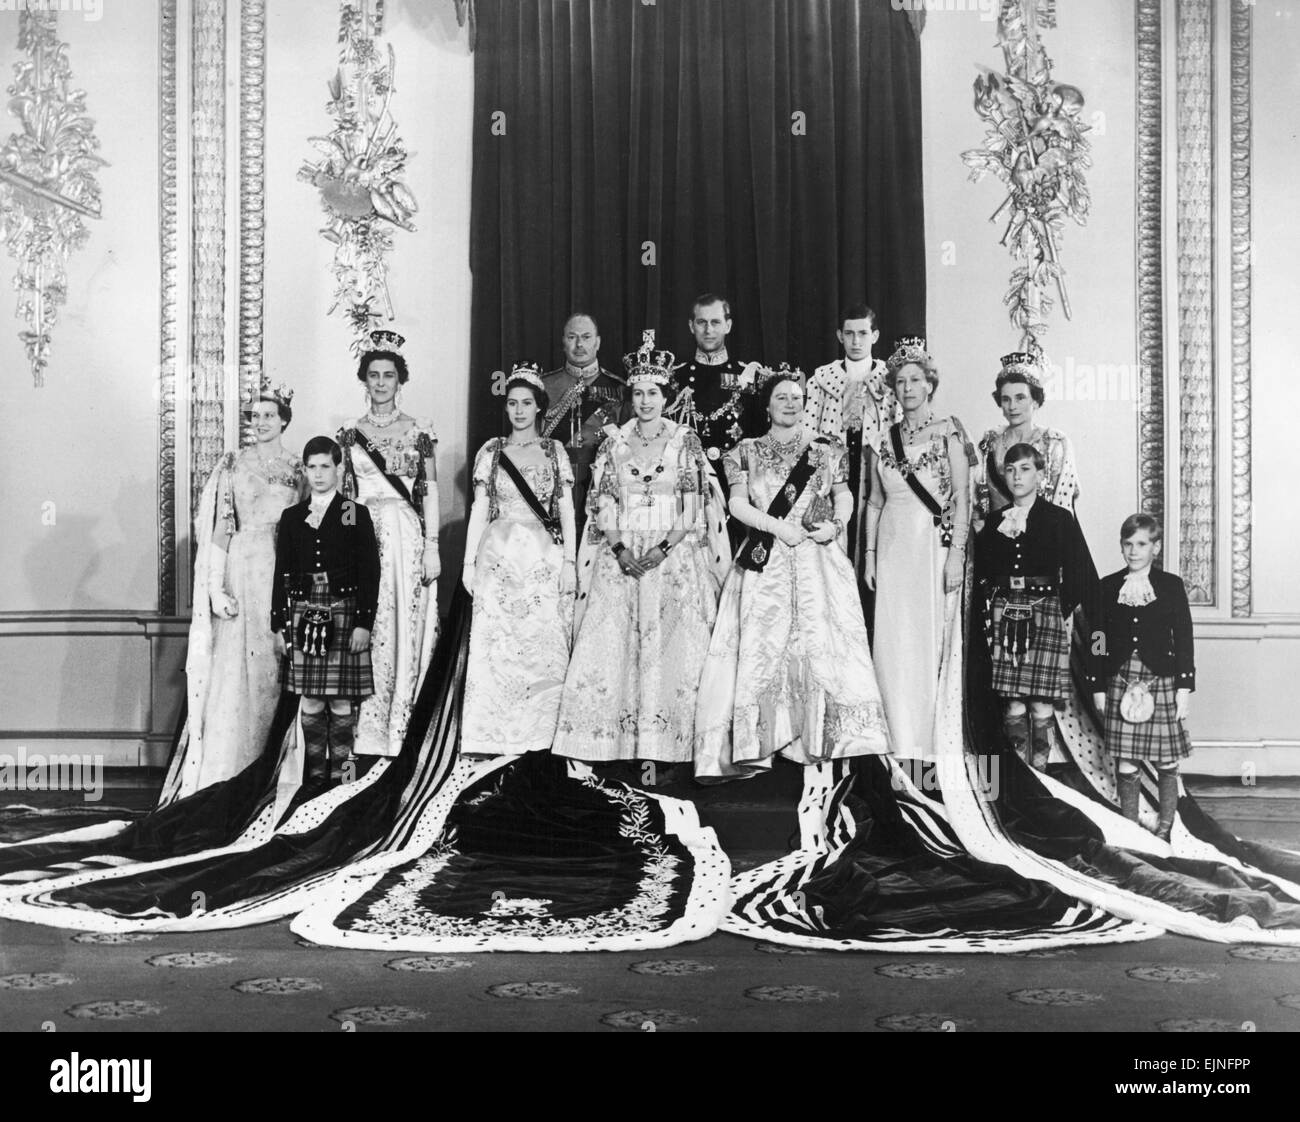 Princess Margaret Foto >> Coronation of Queen Elizabeth II. The Royal Family in their robes Stock Photo, Royalty Free ...